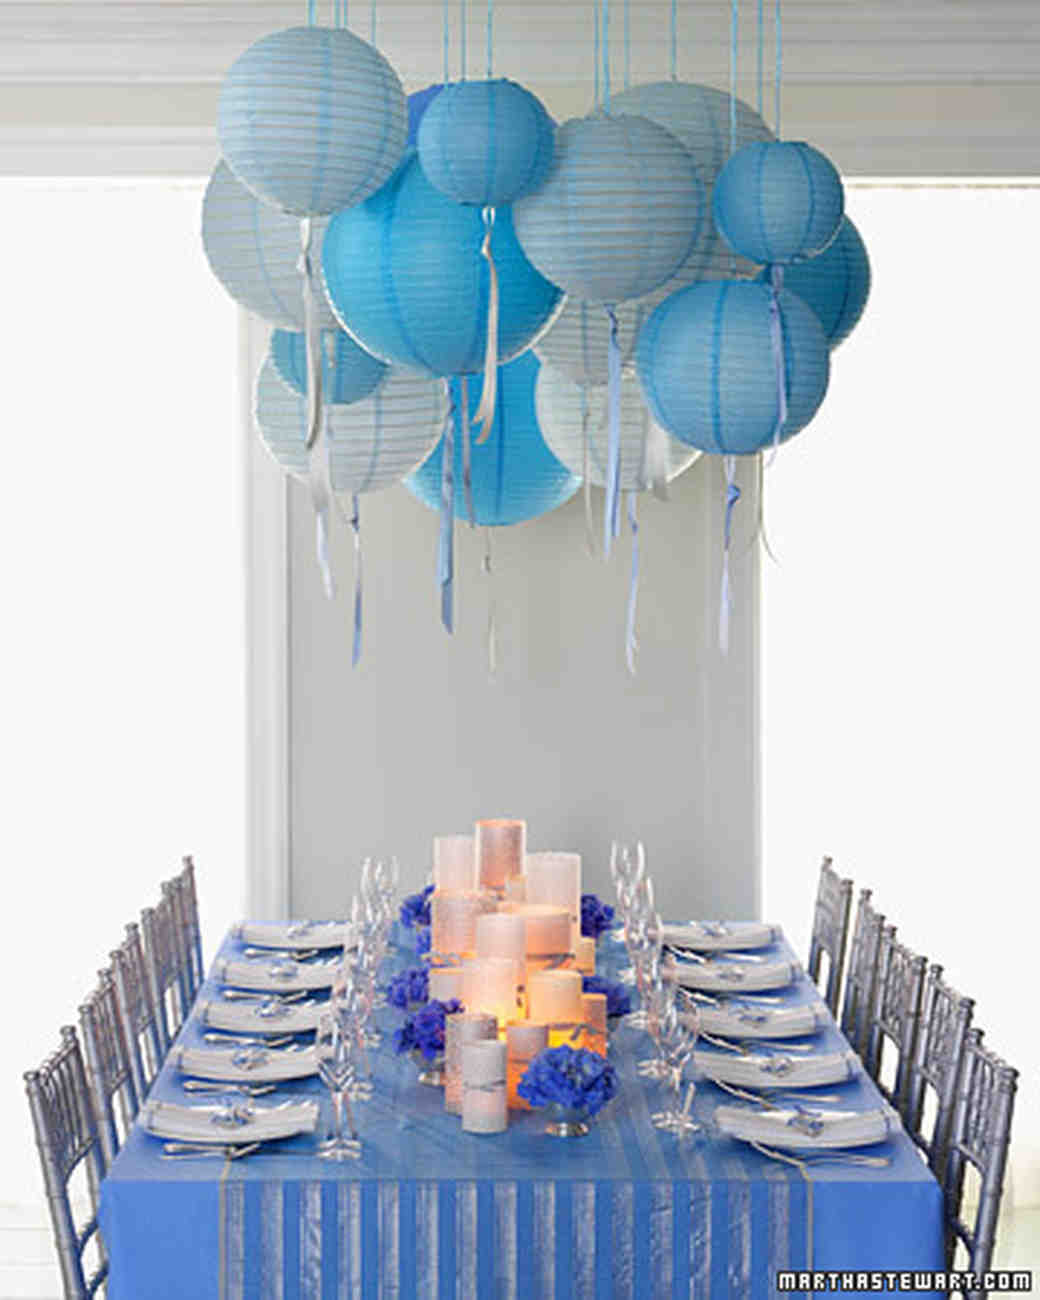 22 blue bridal shower ideas that are so cool | martha stewart weddings